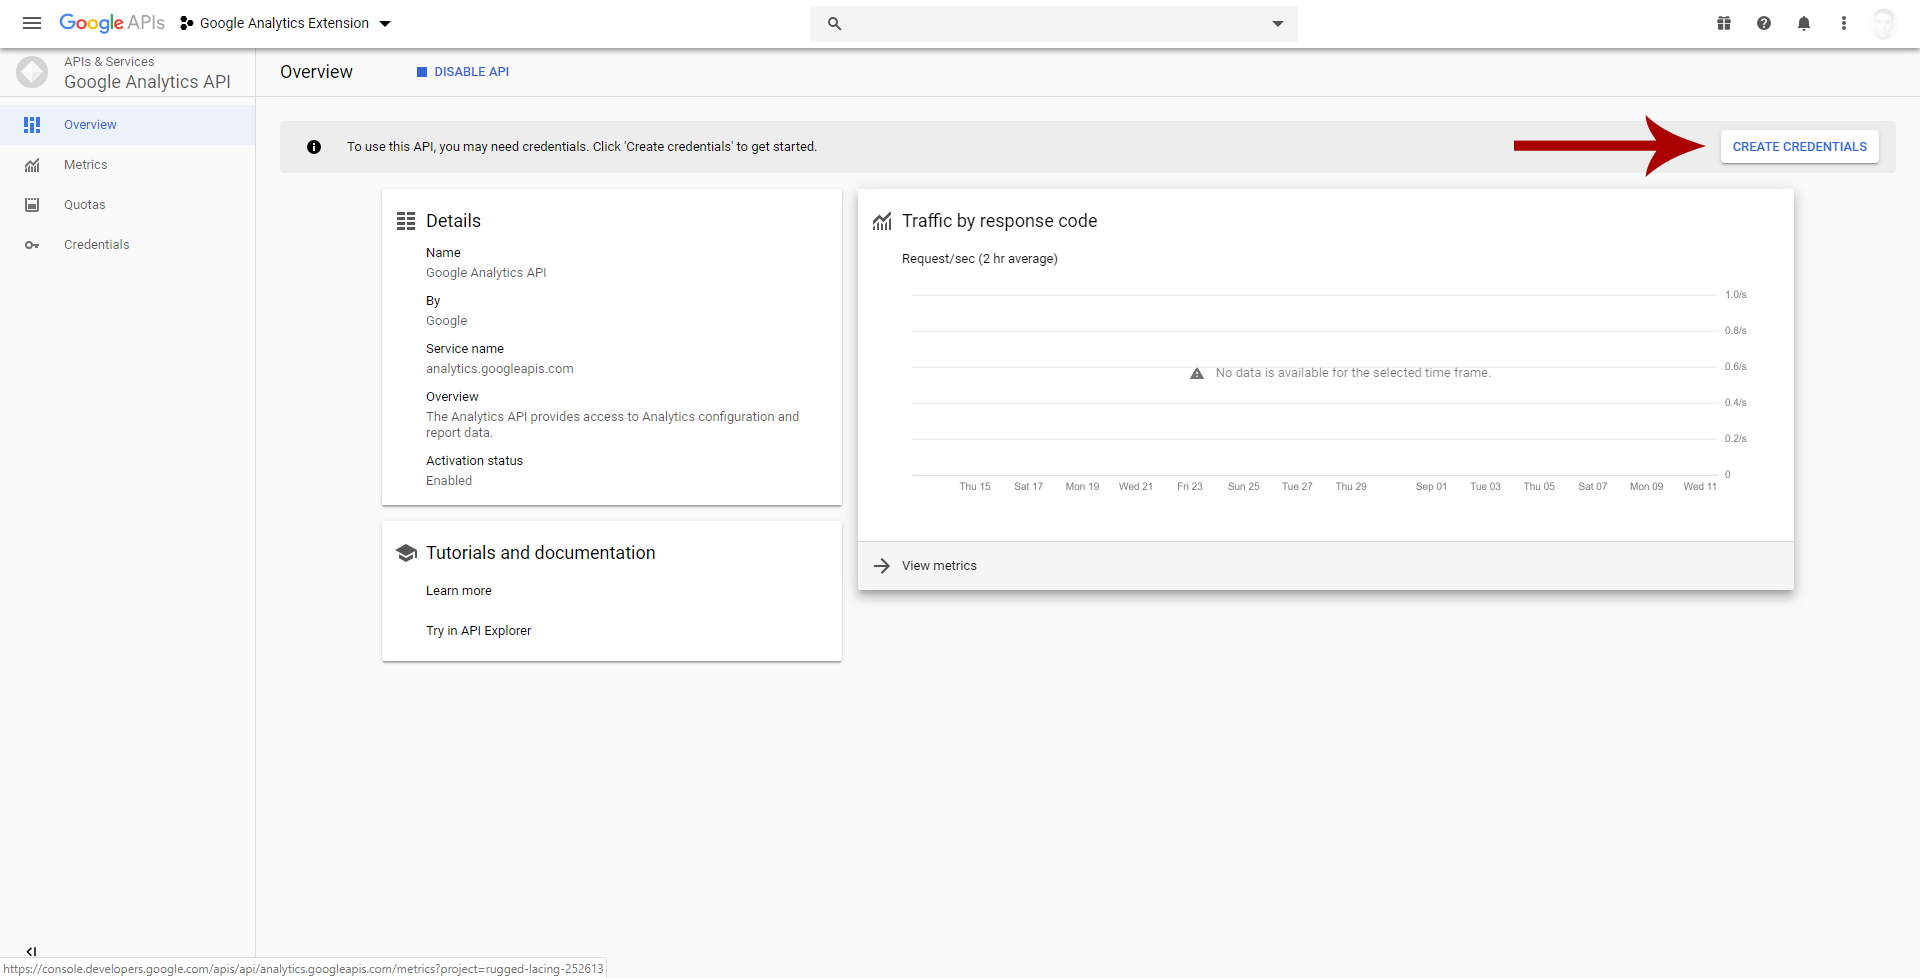 Create Google Analytics Client ID and Secret Client 7